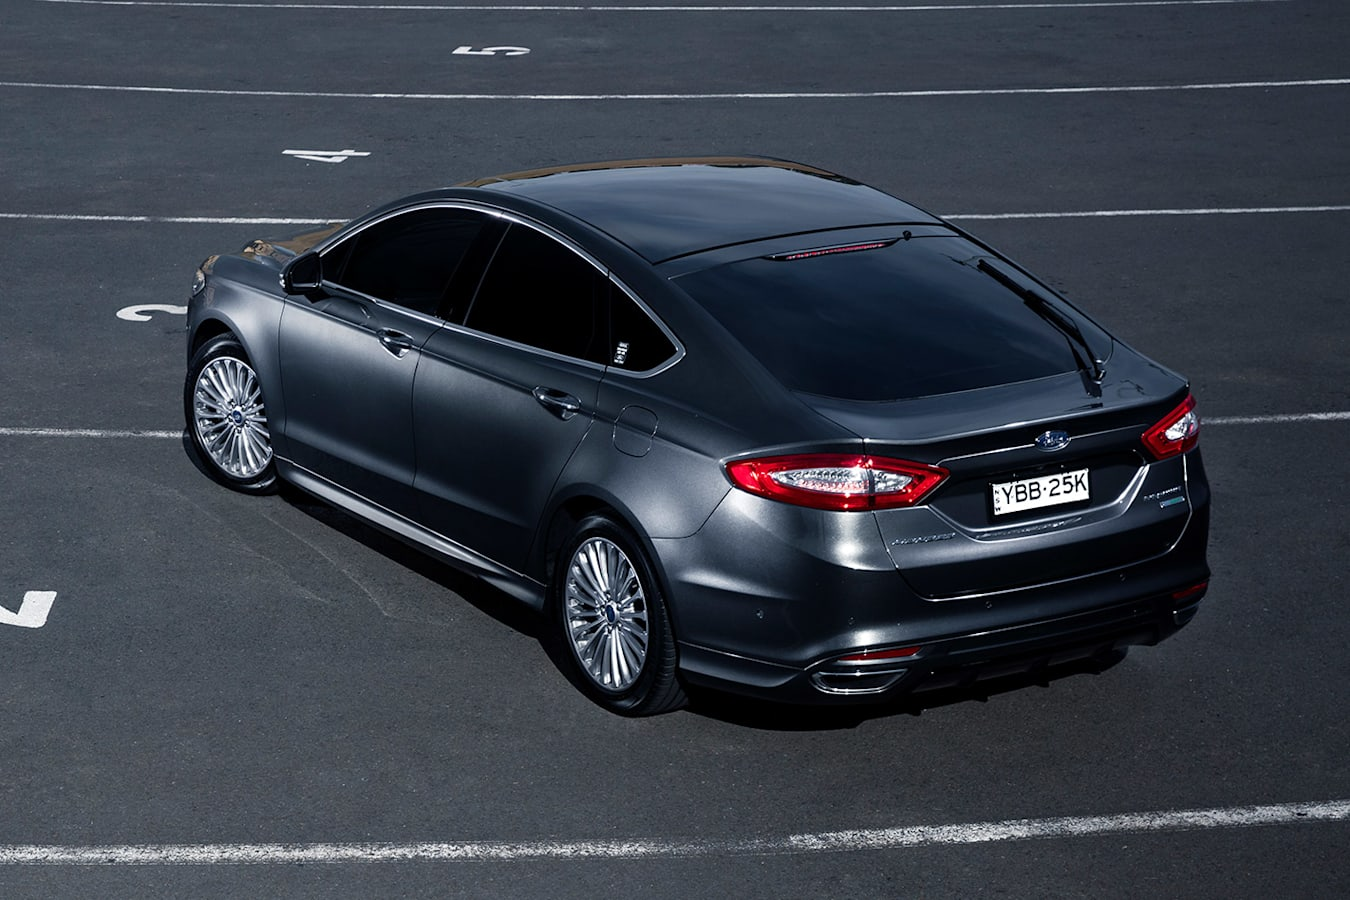 Ford Mondeo rear